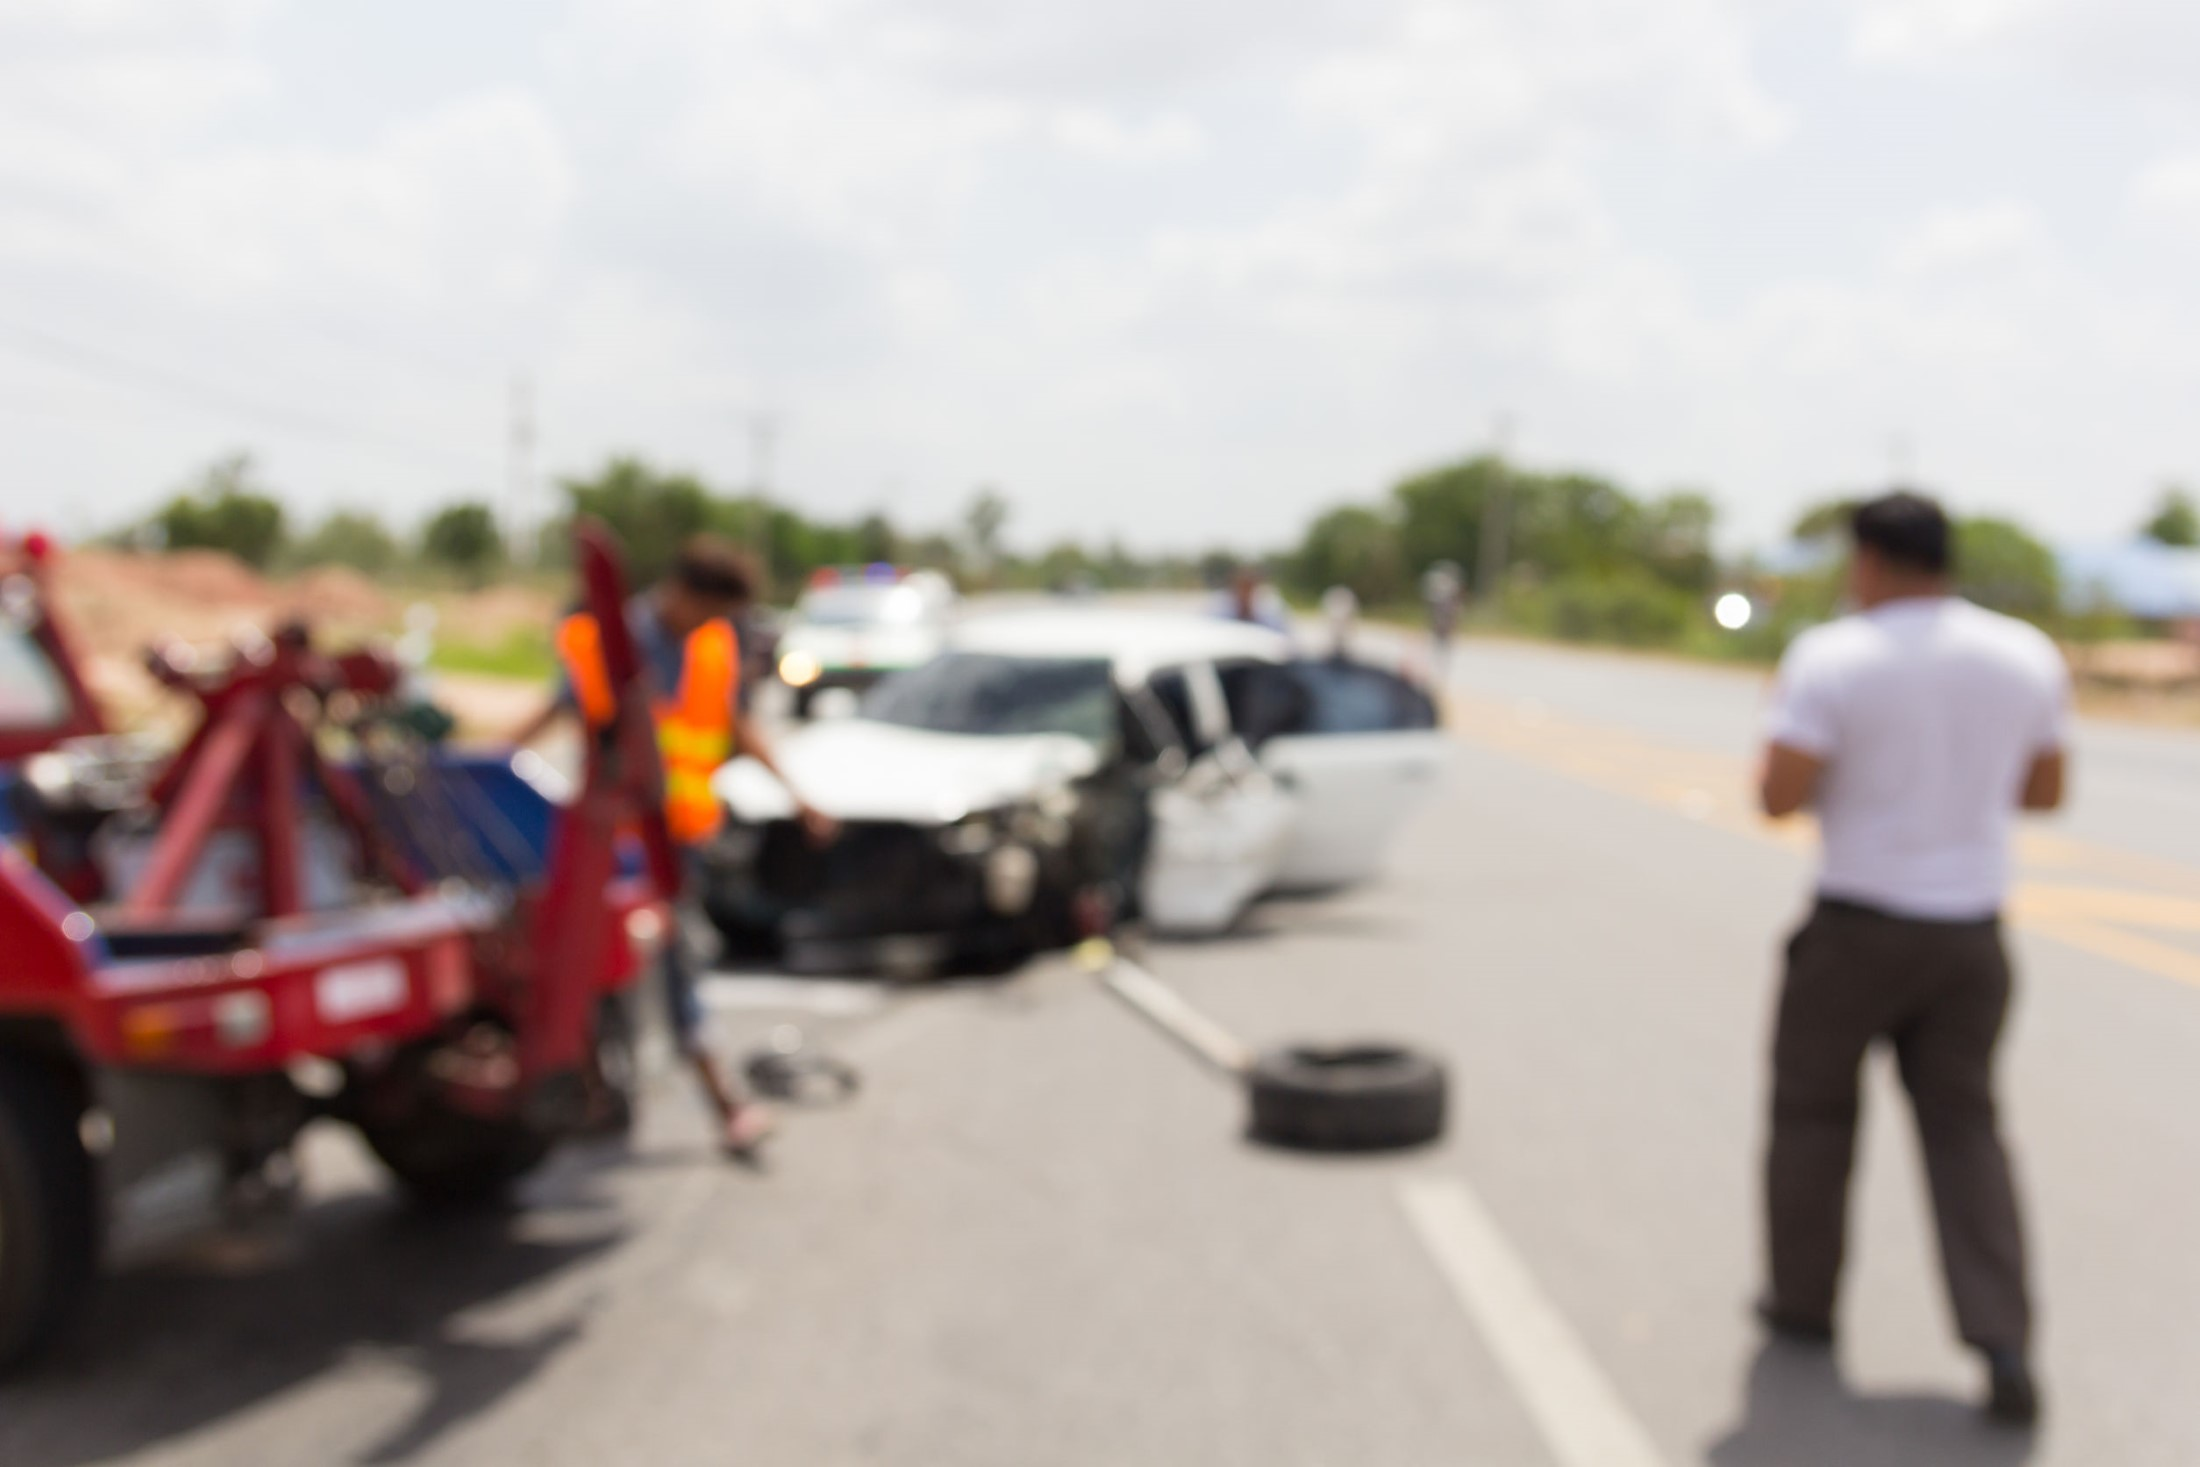 Personal Injury Car Accident: What To Do